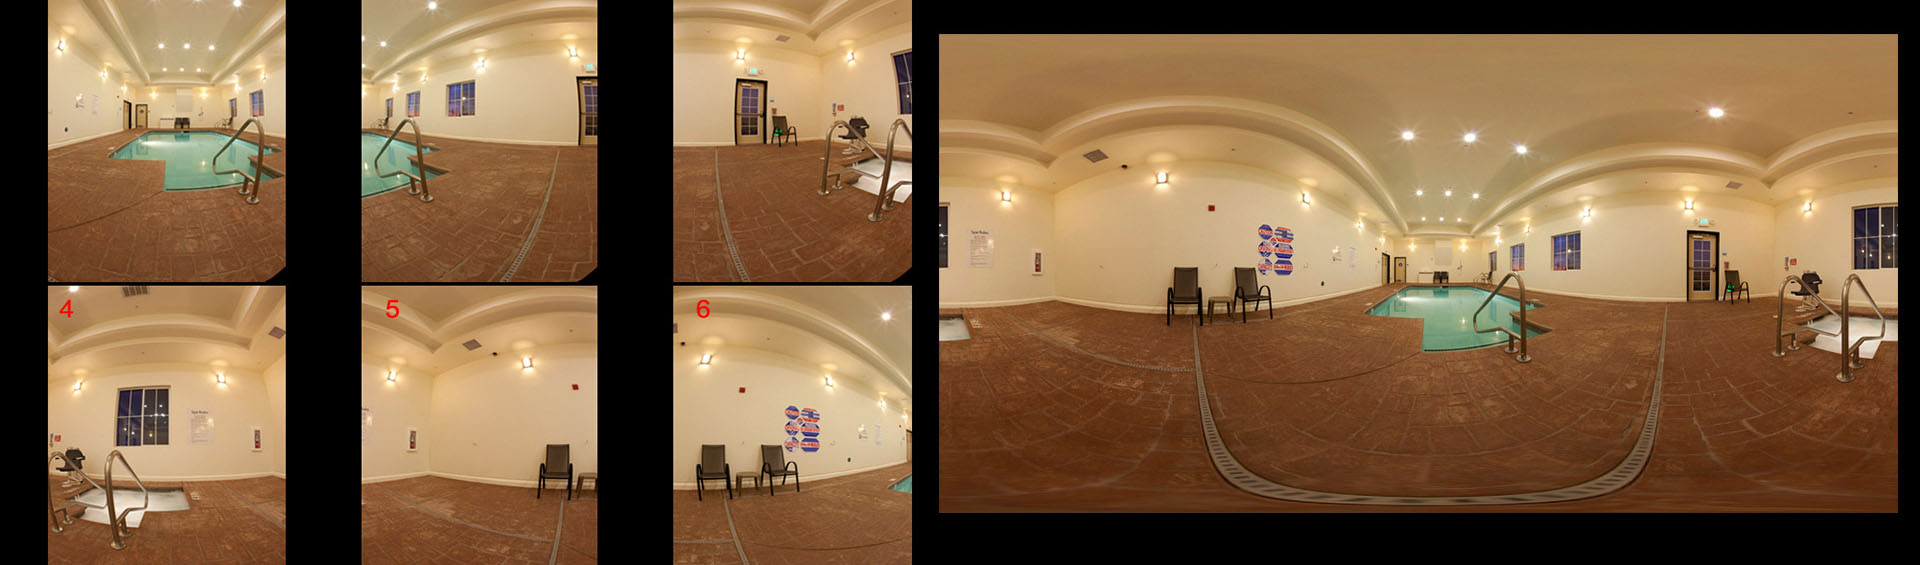 360 Degree Panorama Stitching Services